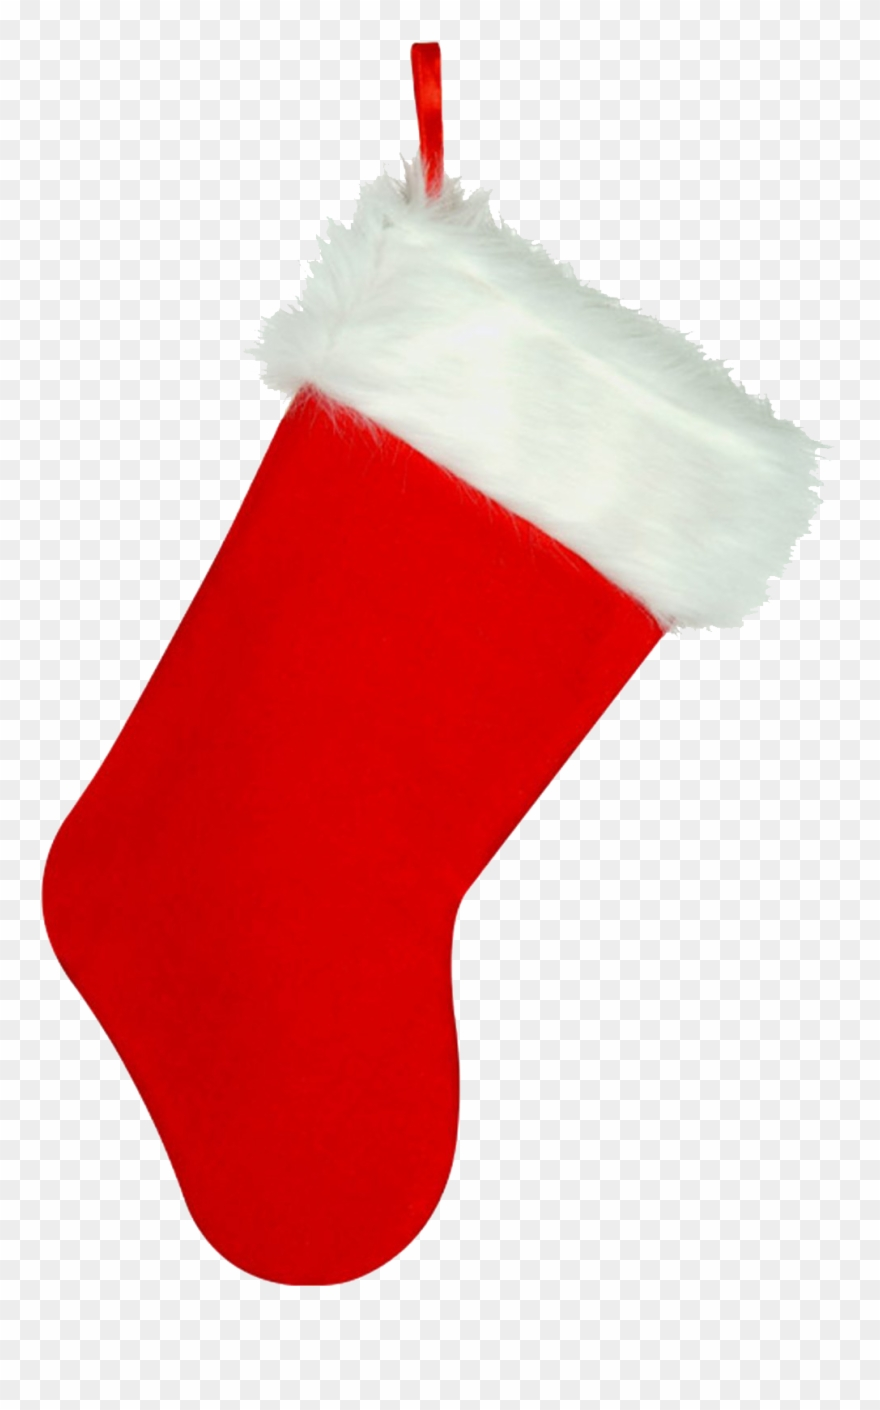 Christmas Stockings Free Png Transparent Background Clipart.